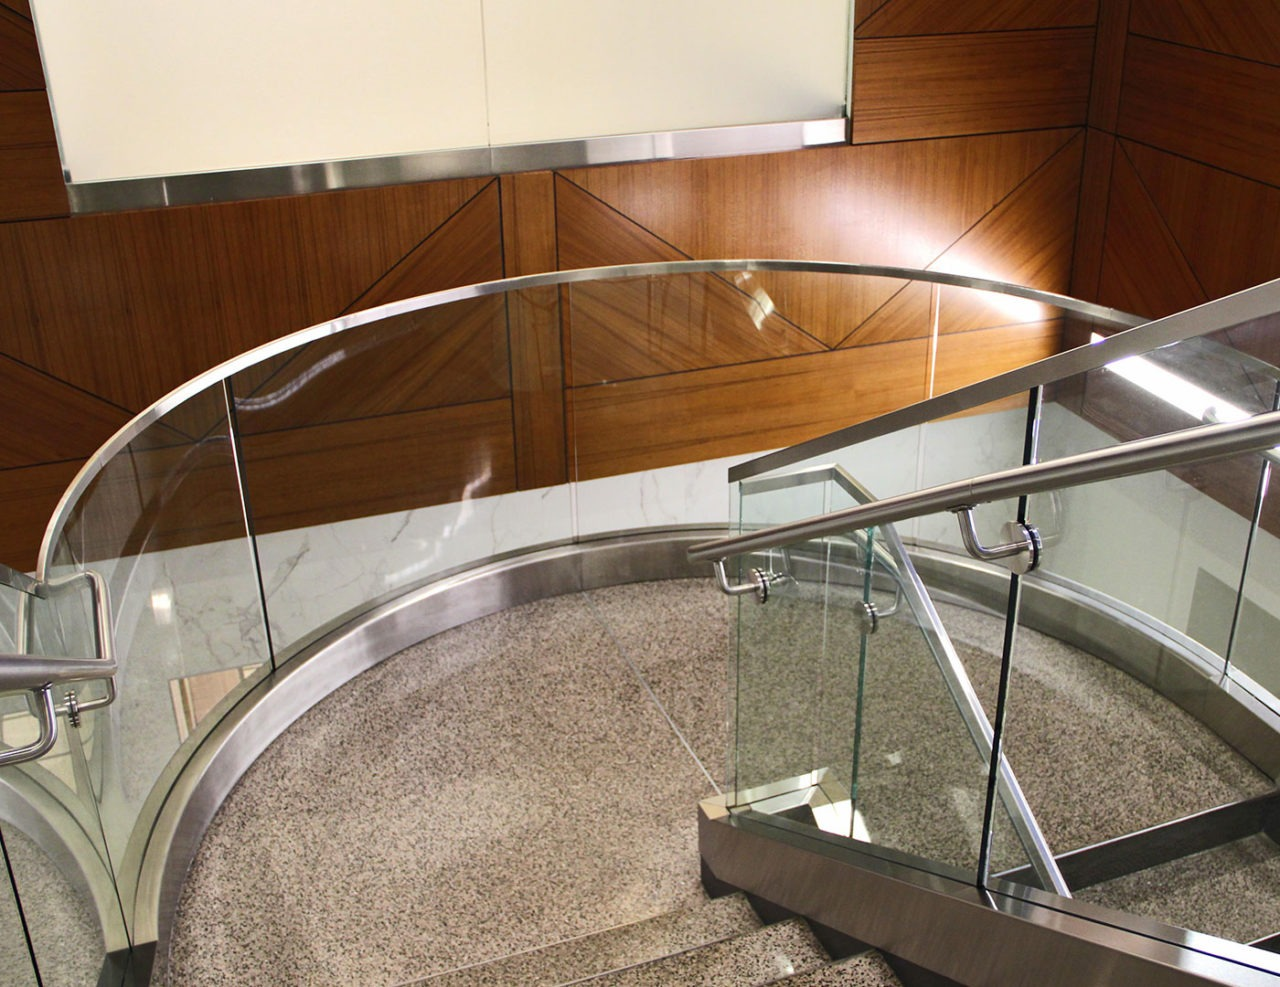 Curved glass railing railing on stair landing achieved by rolling shoe, cladding and top cap.